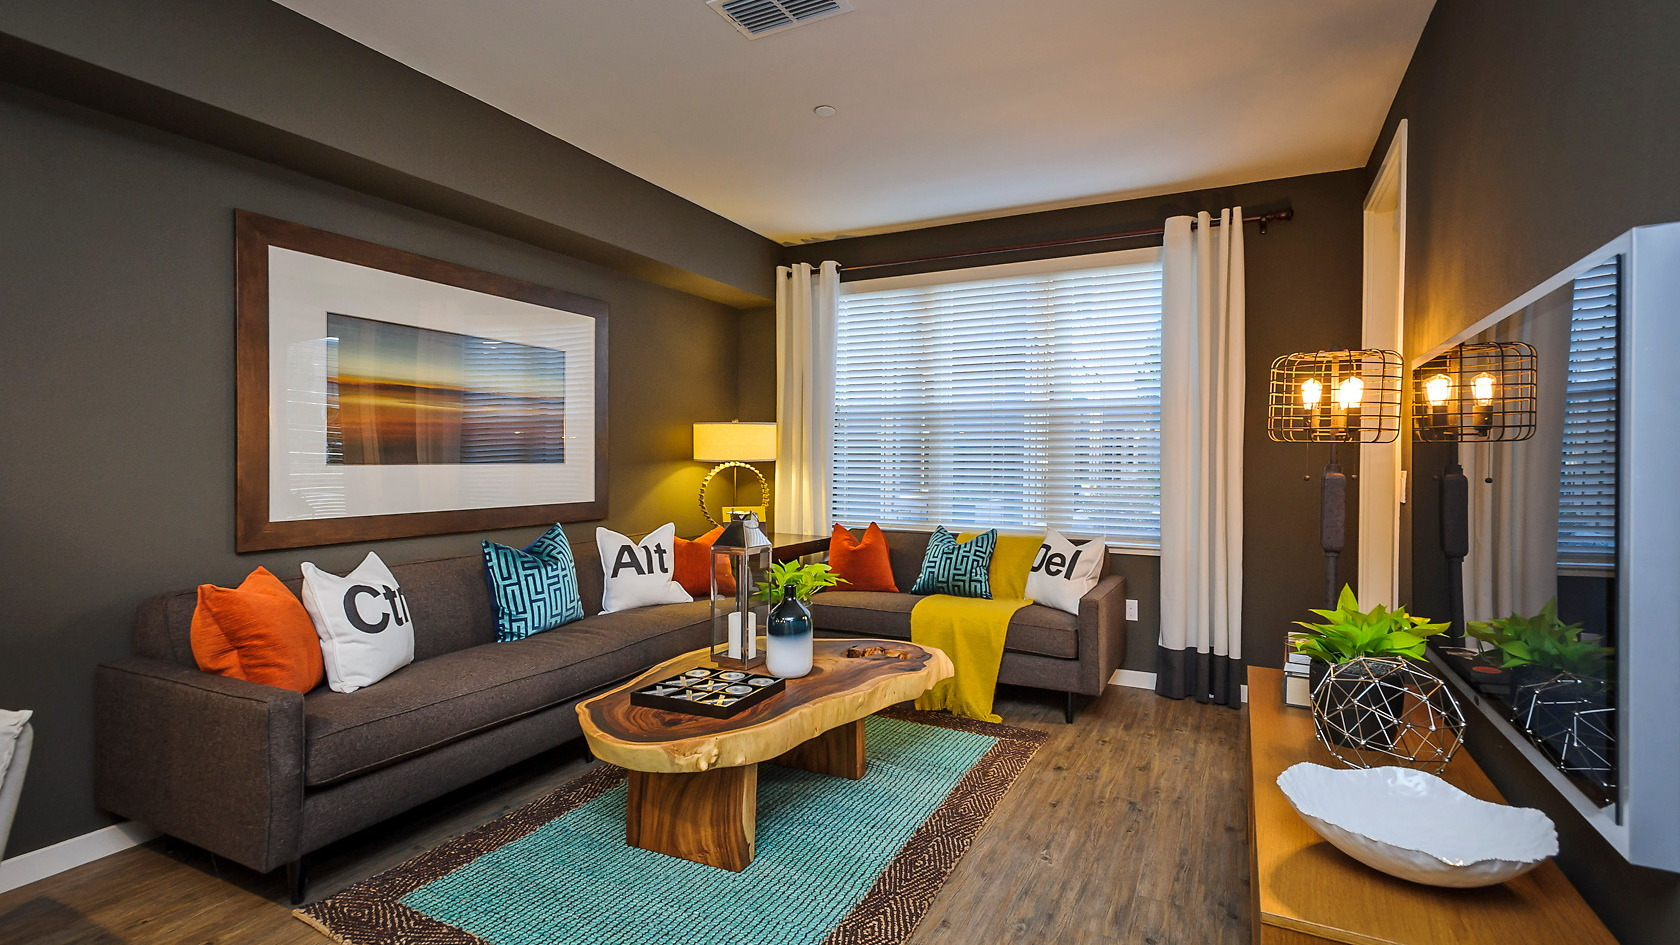 Township Corporate Rental-Sample Image of Redwood City CA Temporary Housing